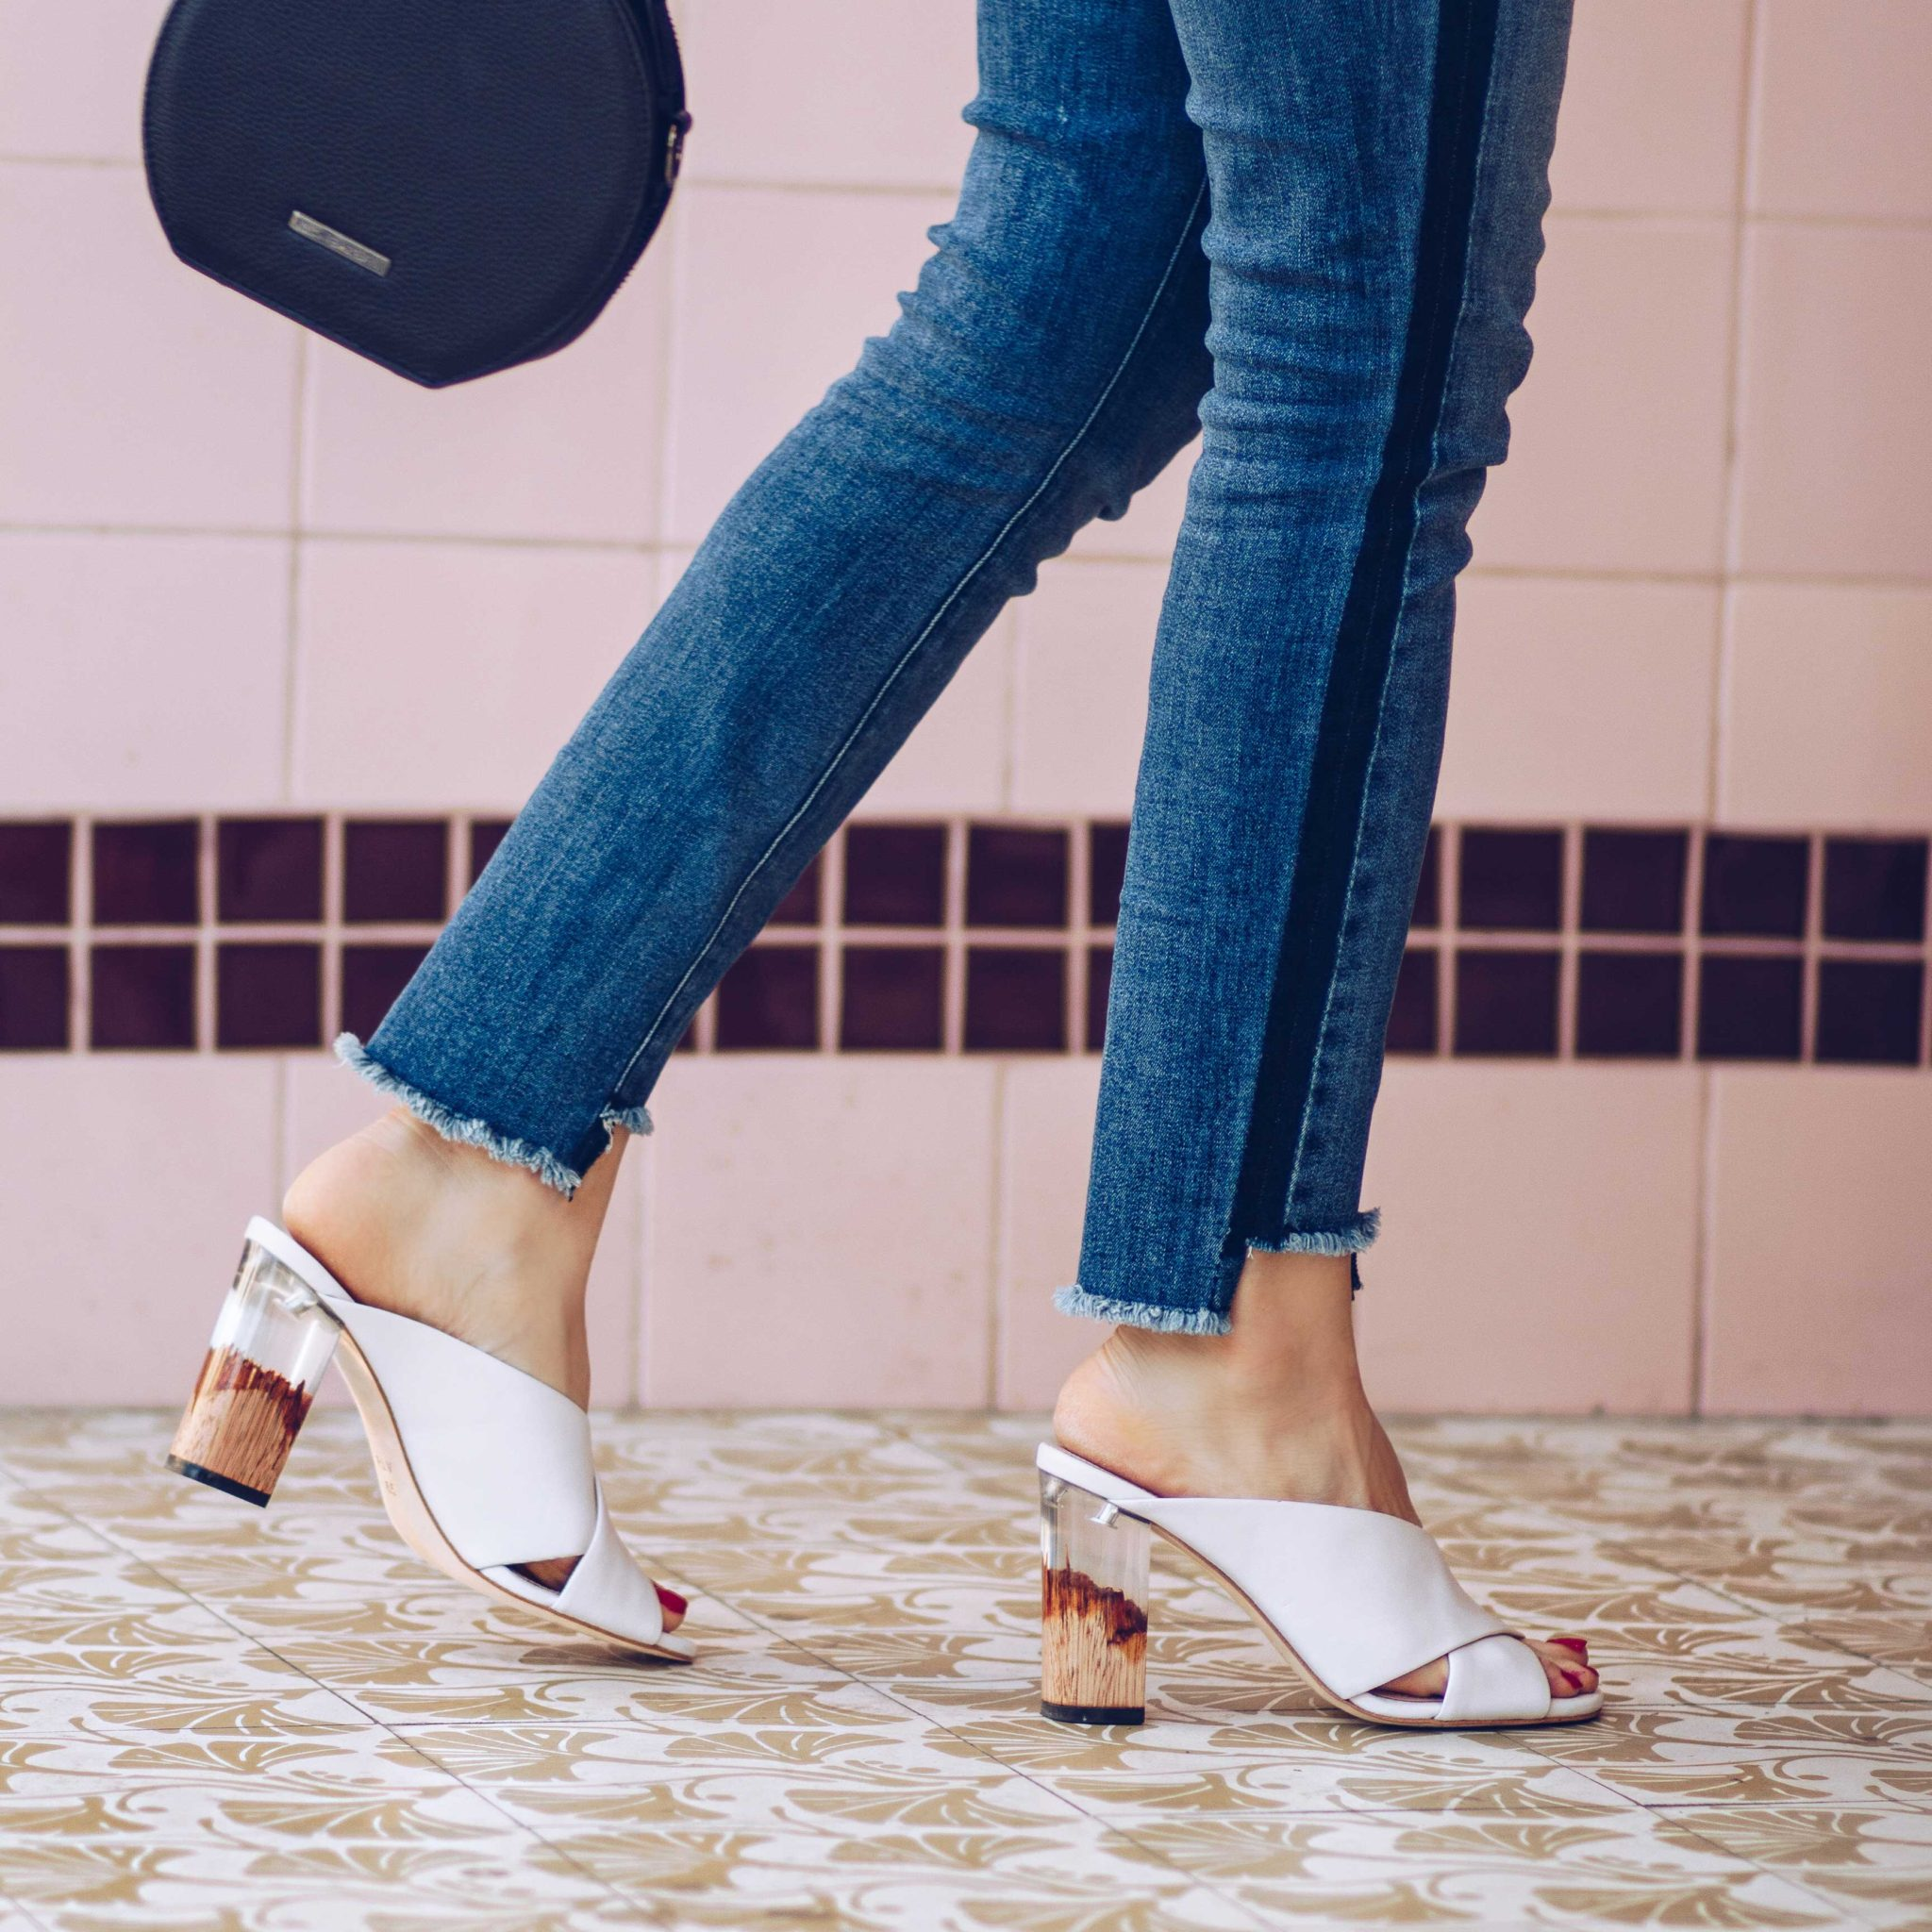 Harley - PLV Shoes - Clear Block Heel - Summer Sandals and Summer Mules: favorite womens sandals for this summer on Houseofcomil.com.